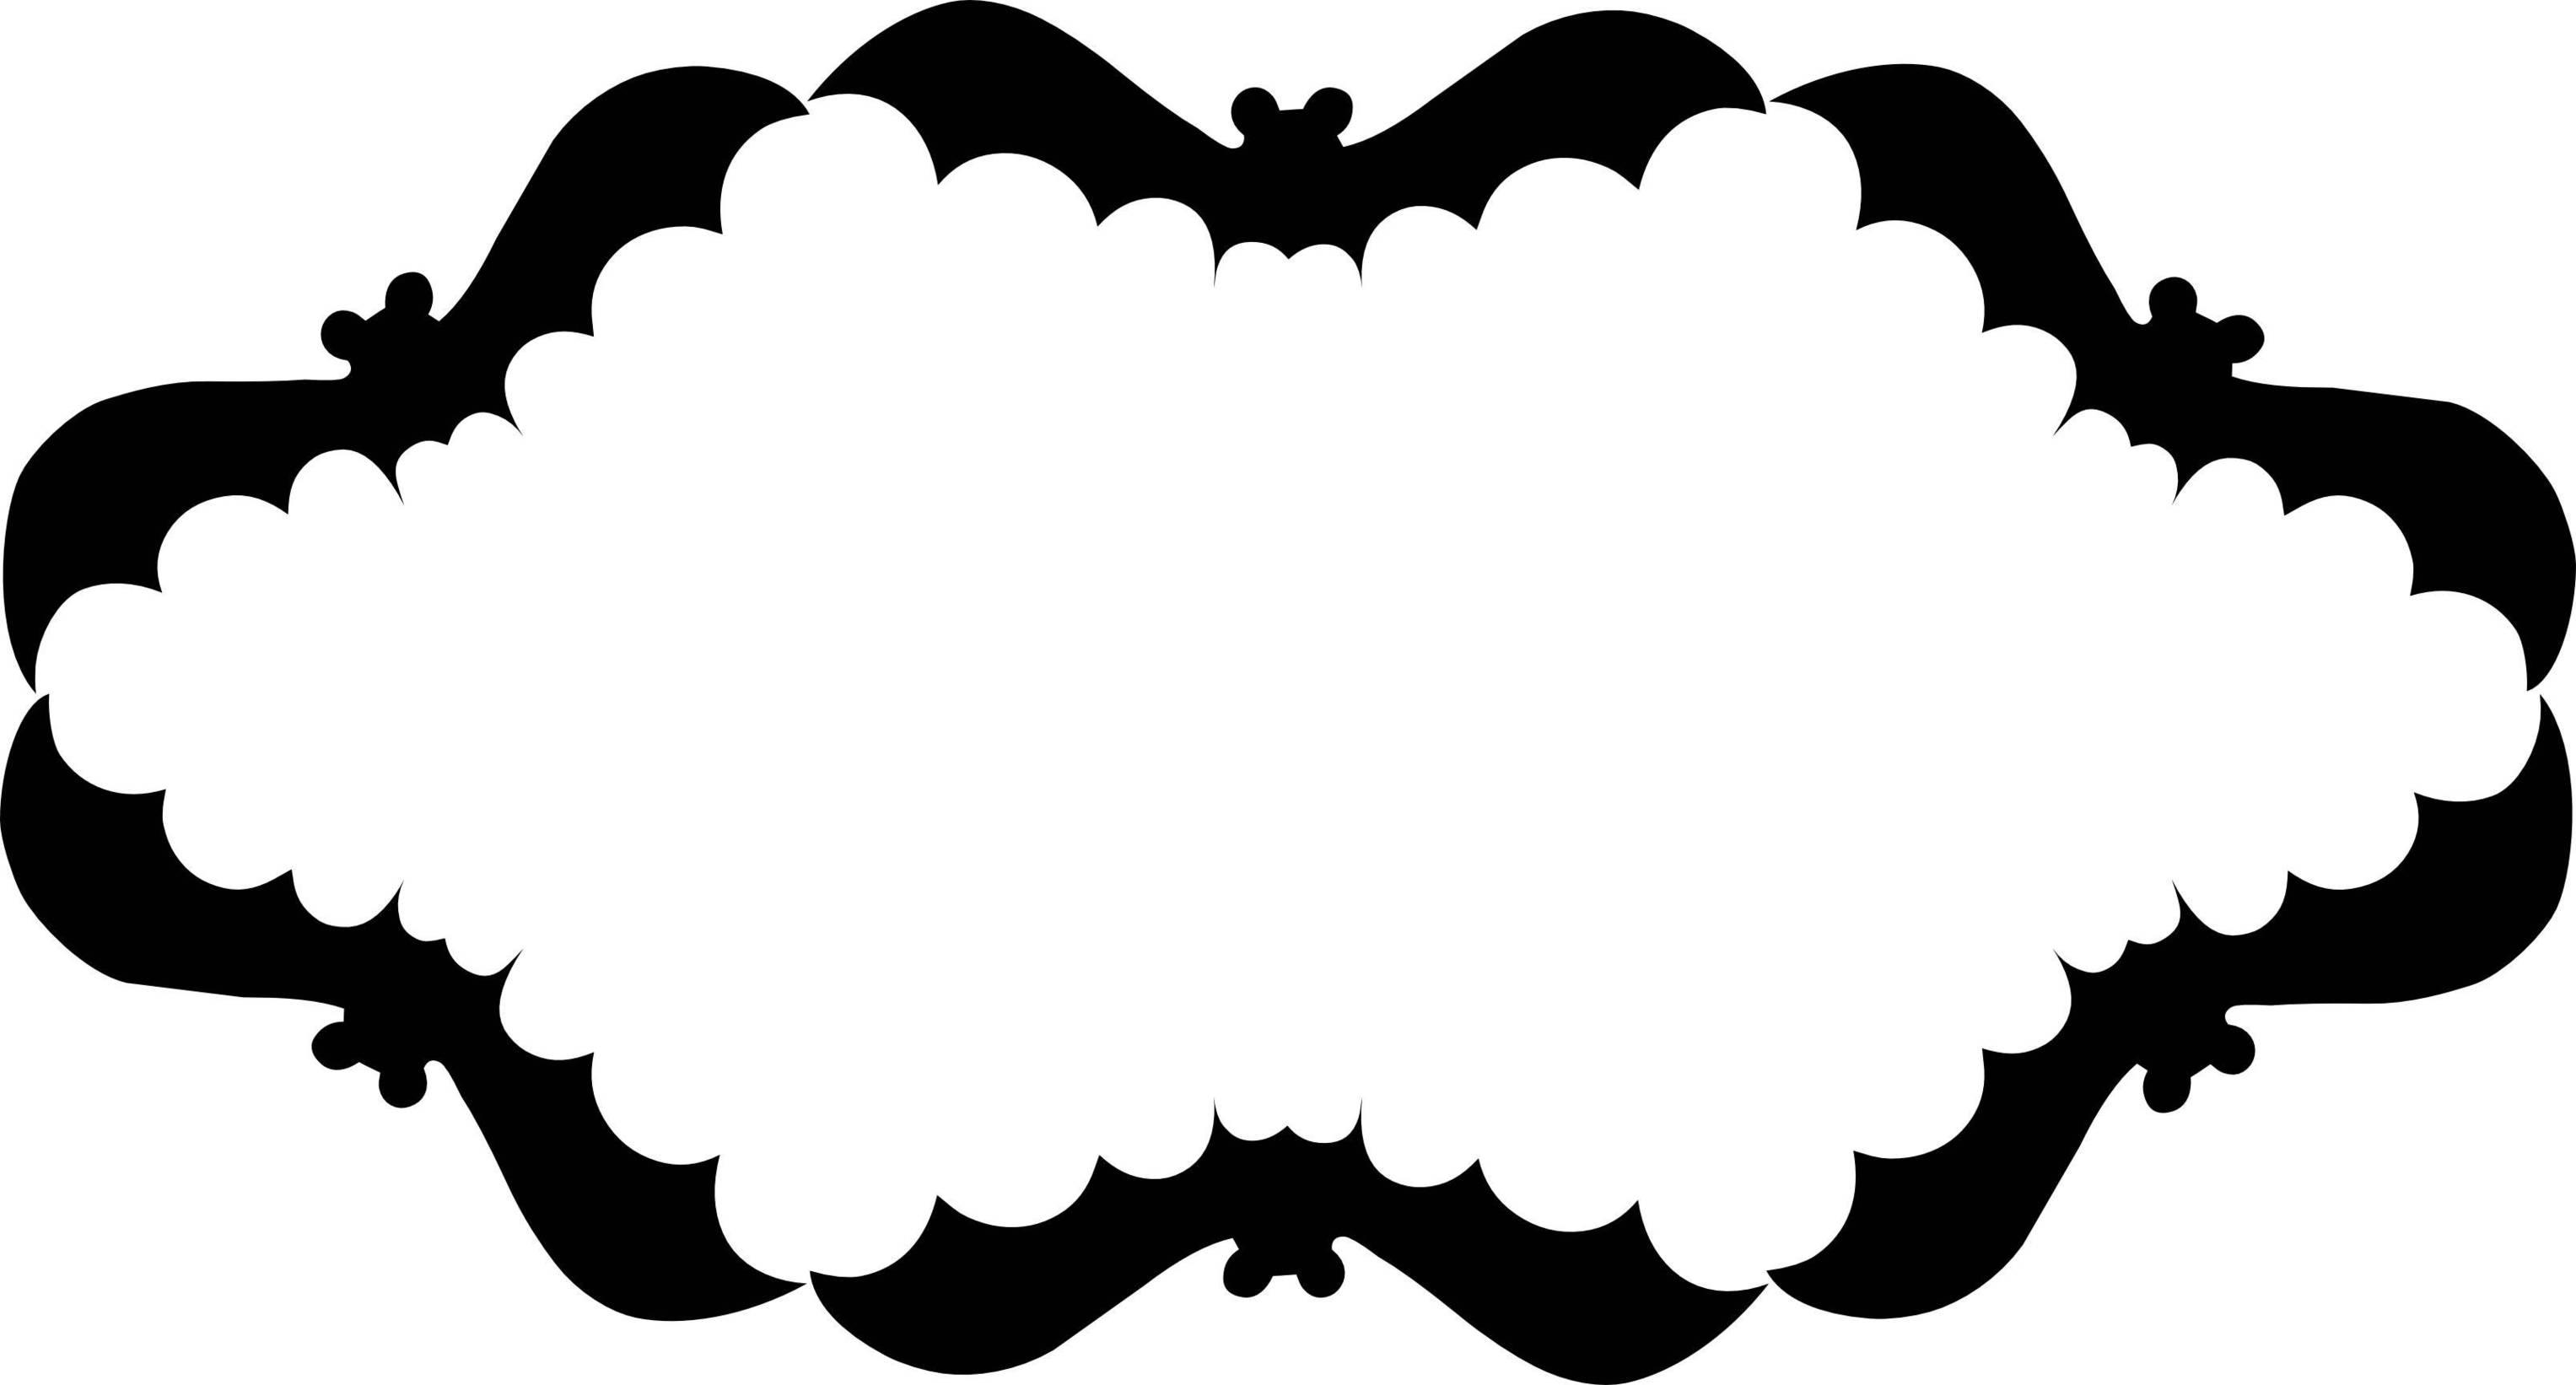 Bat clipart frame Frame Zone Cliparts Halloween Frame